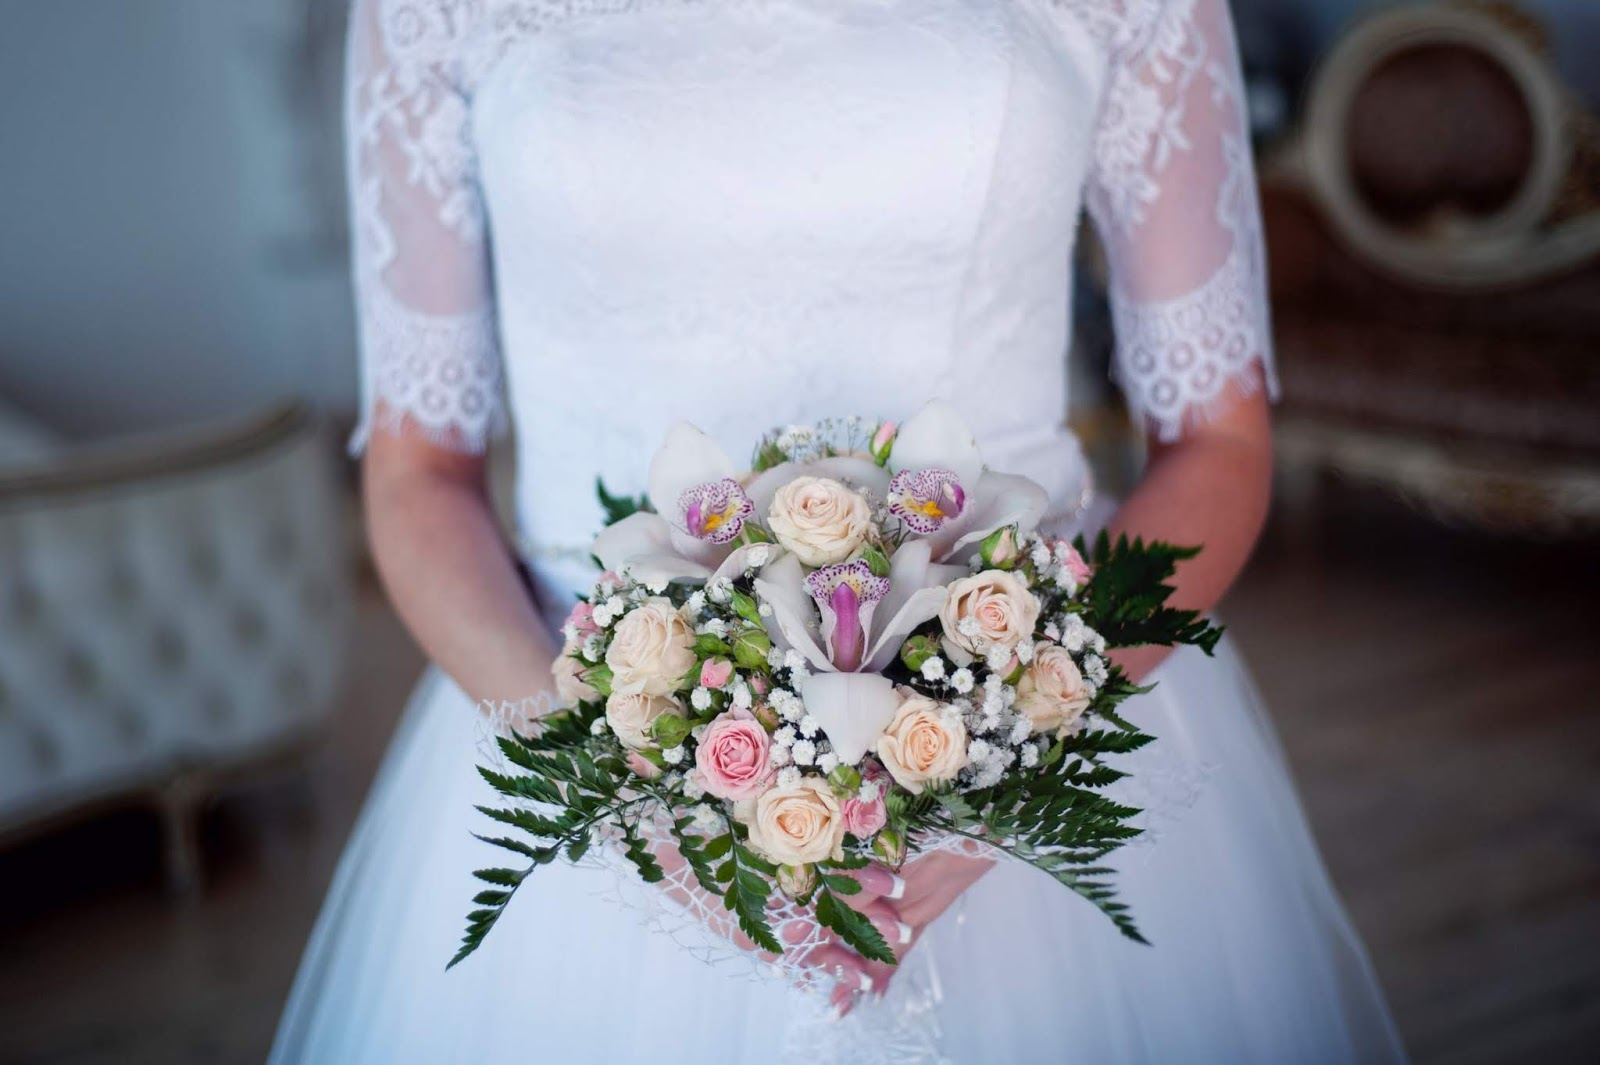 the average wedding costs 33k how to keep to a budget of 5k or